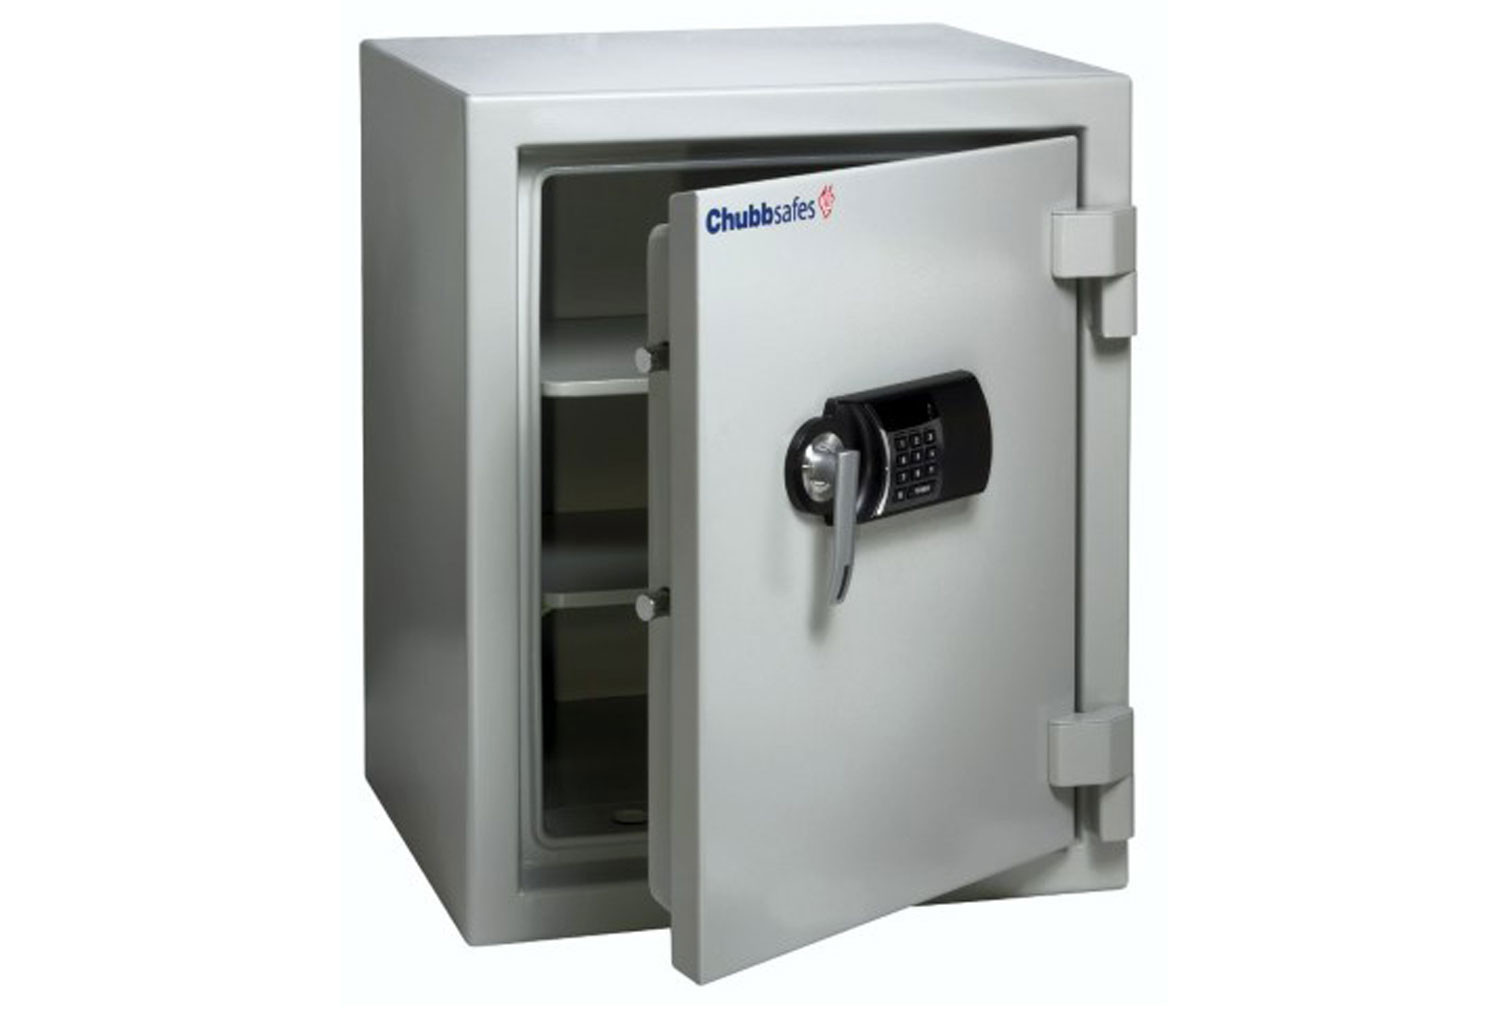 Chubbsafes Executive 65E Fire Resistant Safe With Electronic Lock (71ltrs)